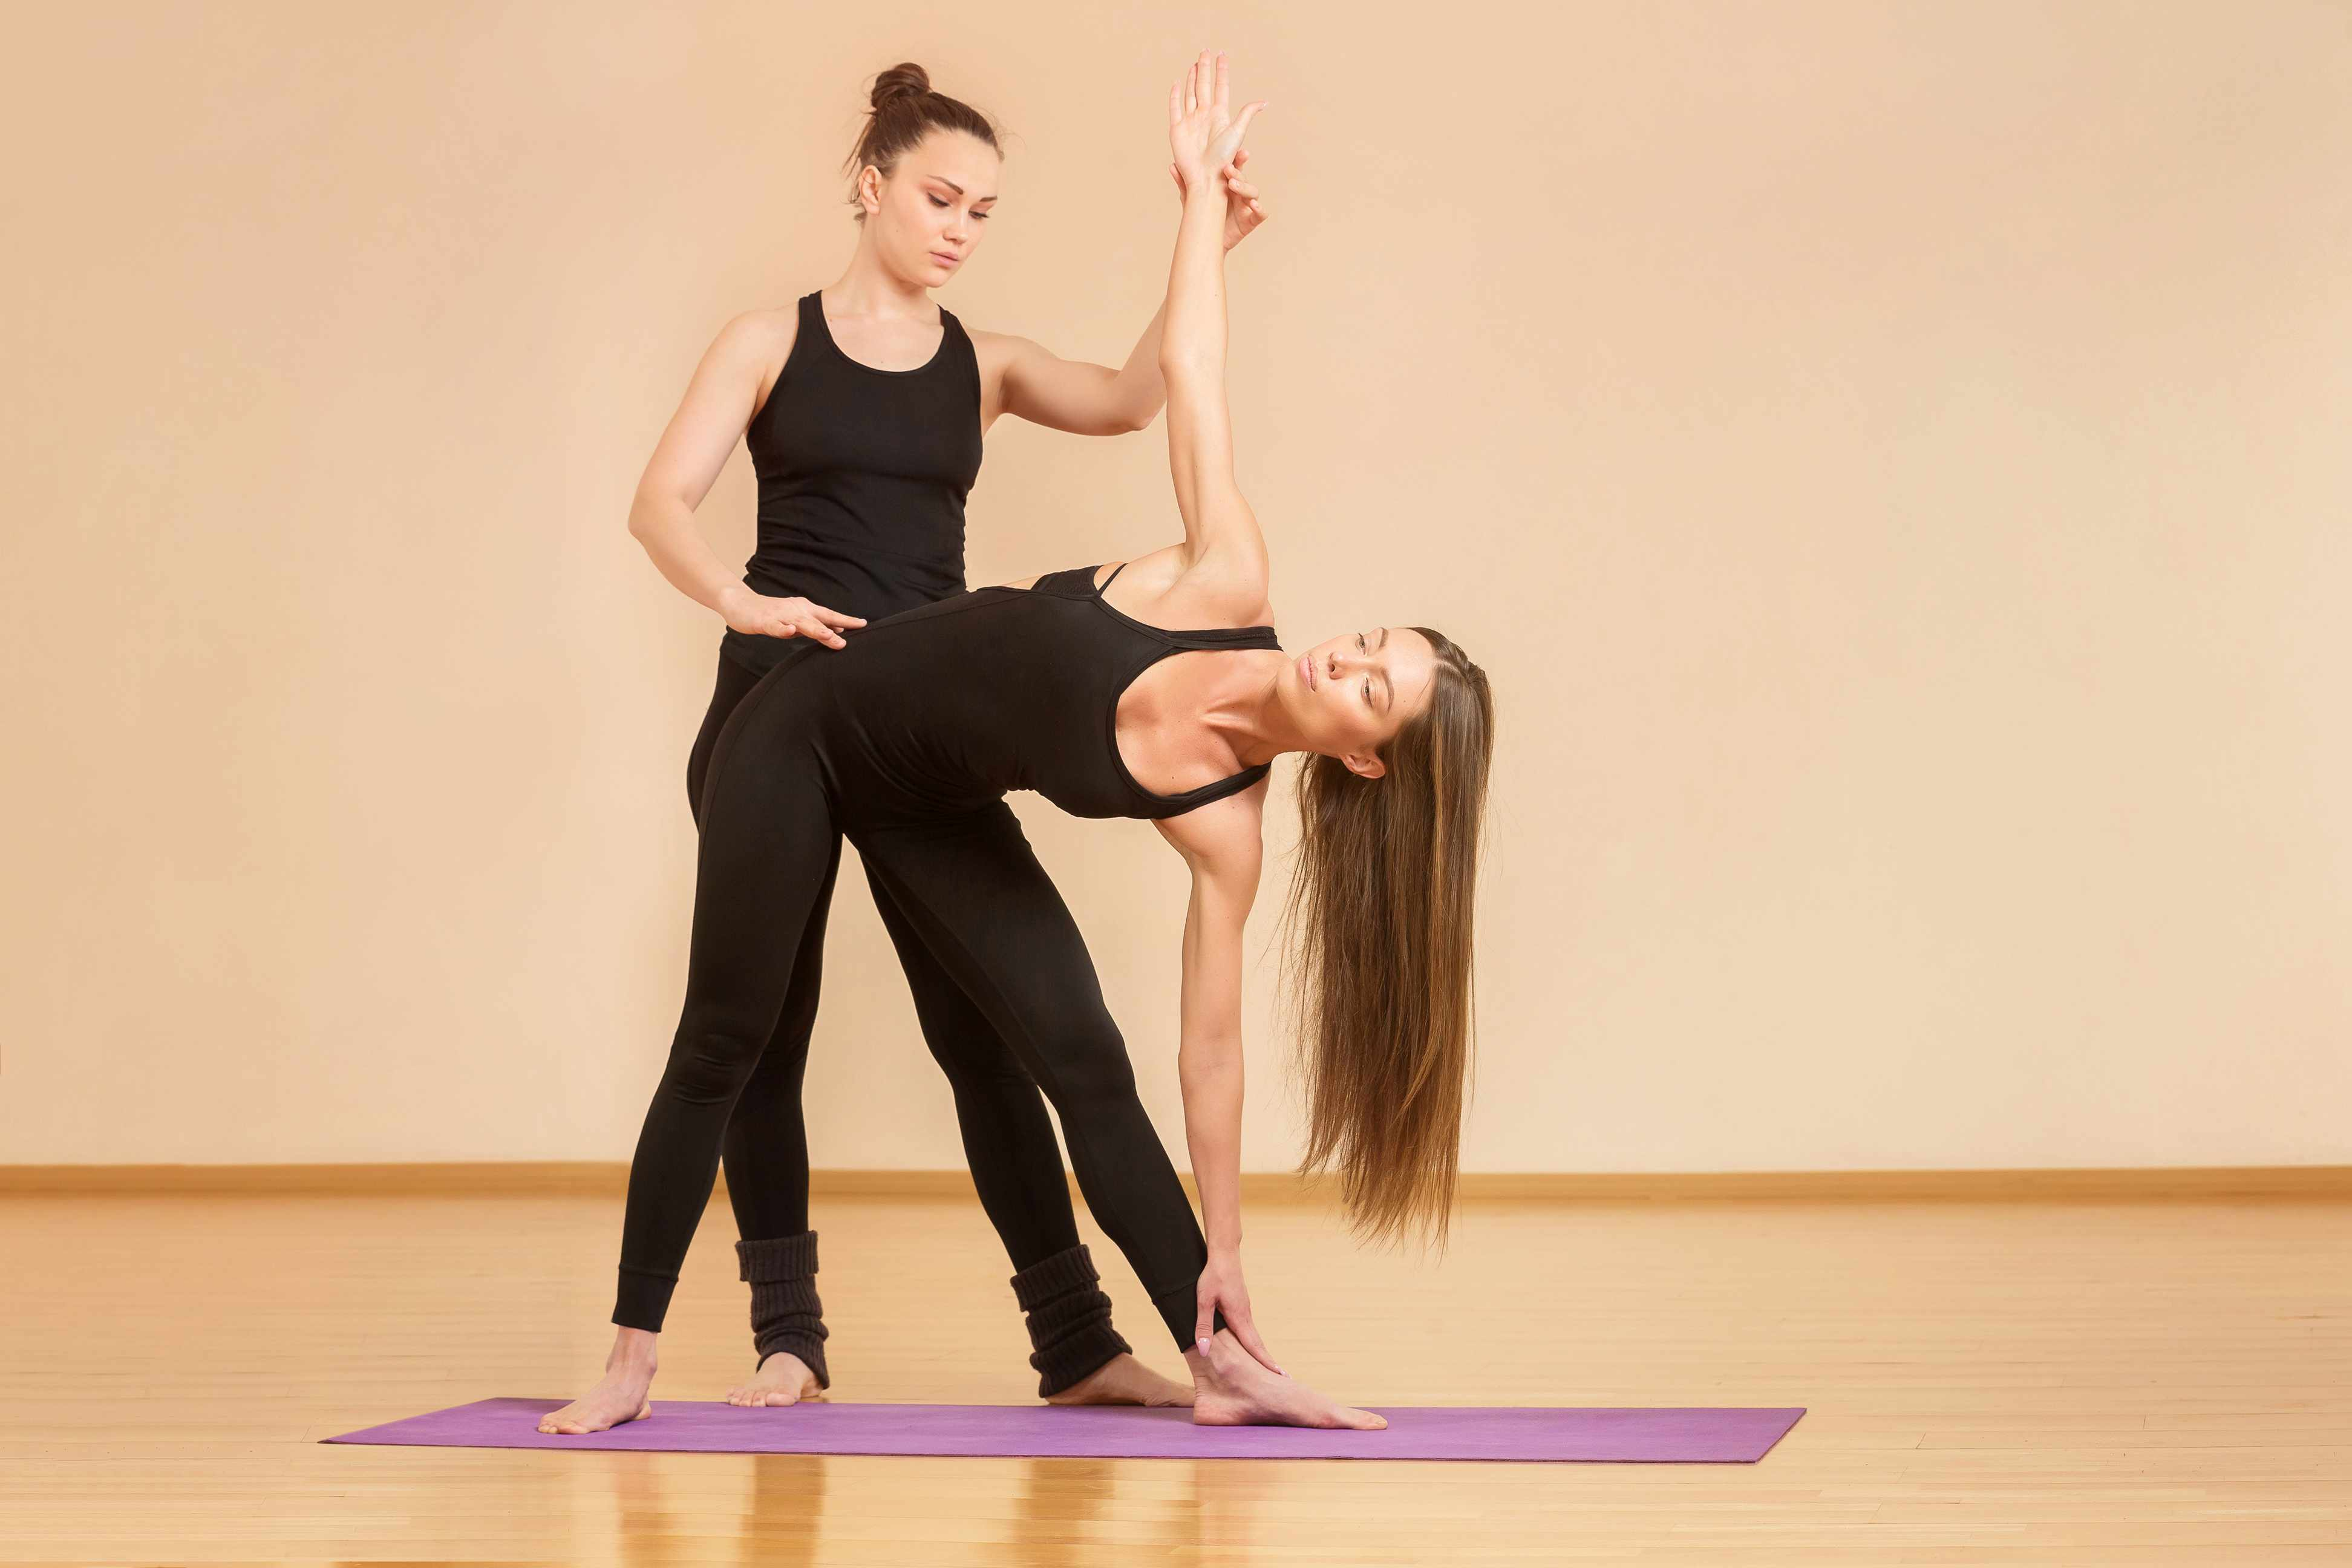 Teacher assisting student in a yoga pose